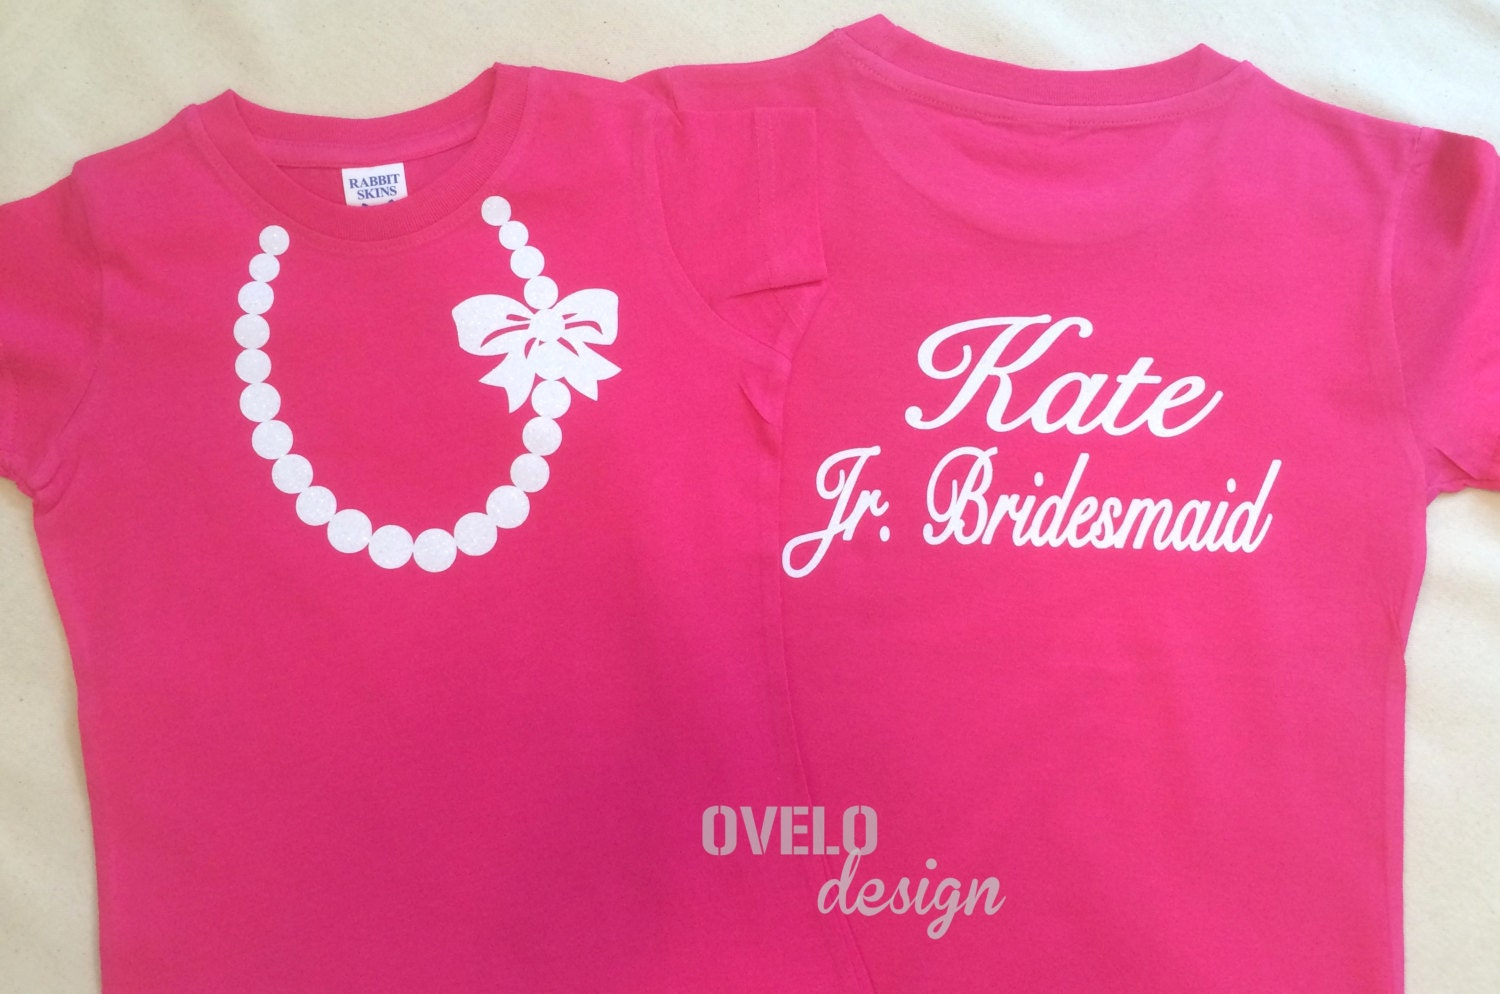 e1ce609c46de6 Custom Personalized Jr. Bridesmaid T-shirt on Back Pearl Necklace on Front